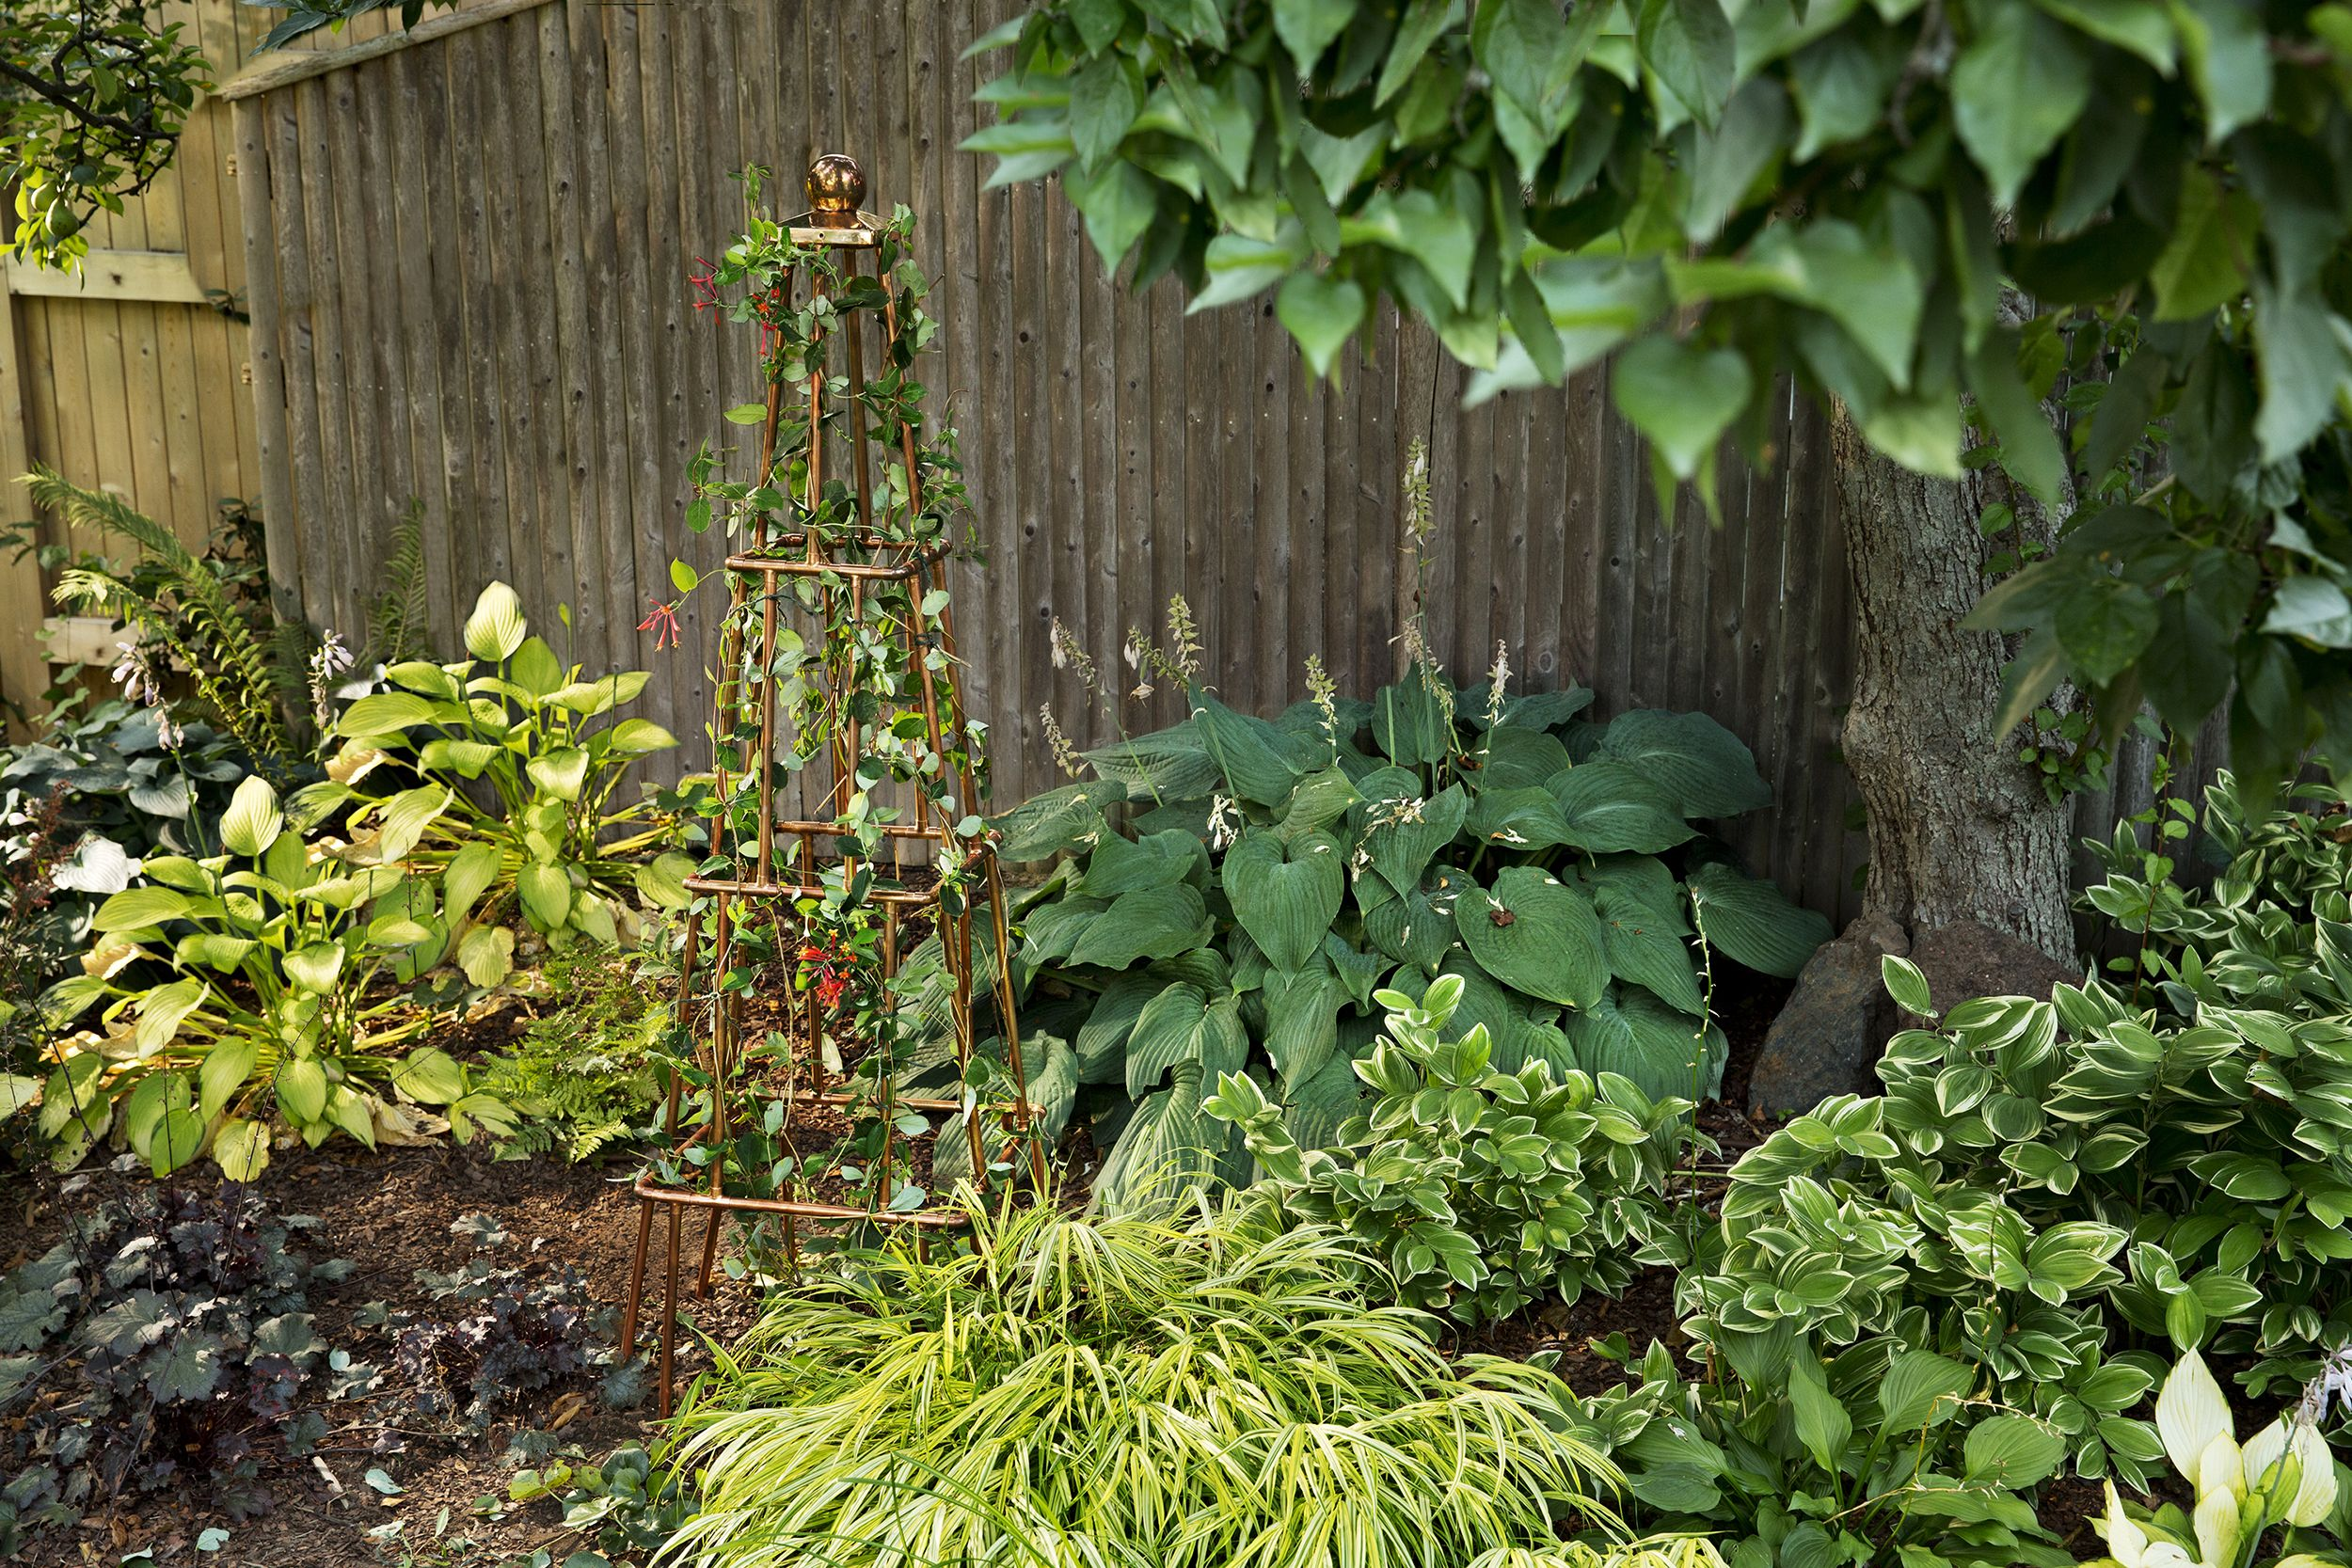 How to Build a Copper Trellis is part of garden Decoration How To Build - Transform plumbing tubing and fittings into an elegant garden accent